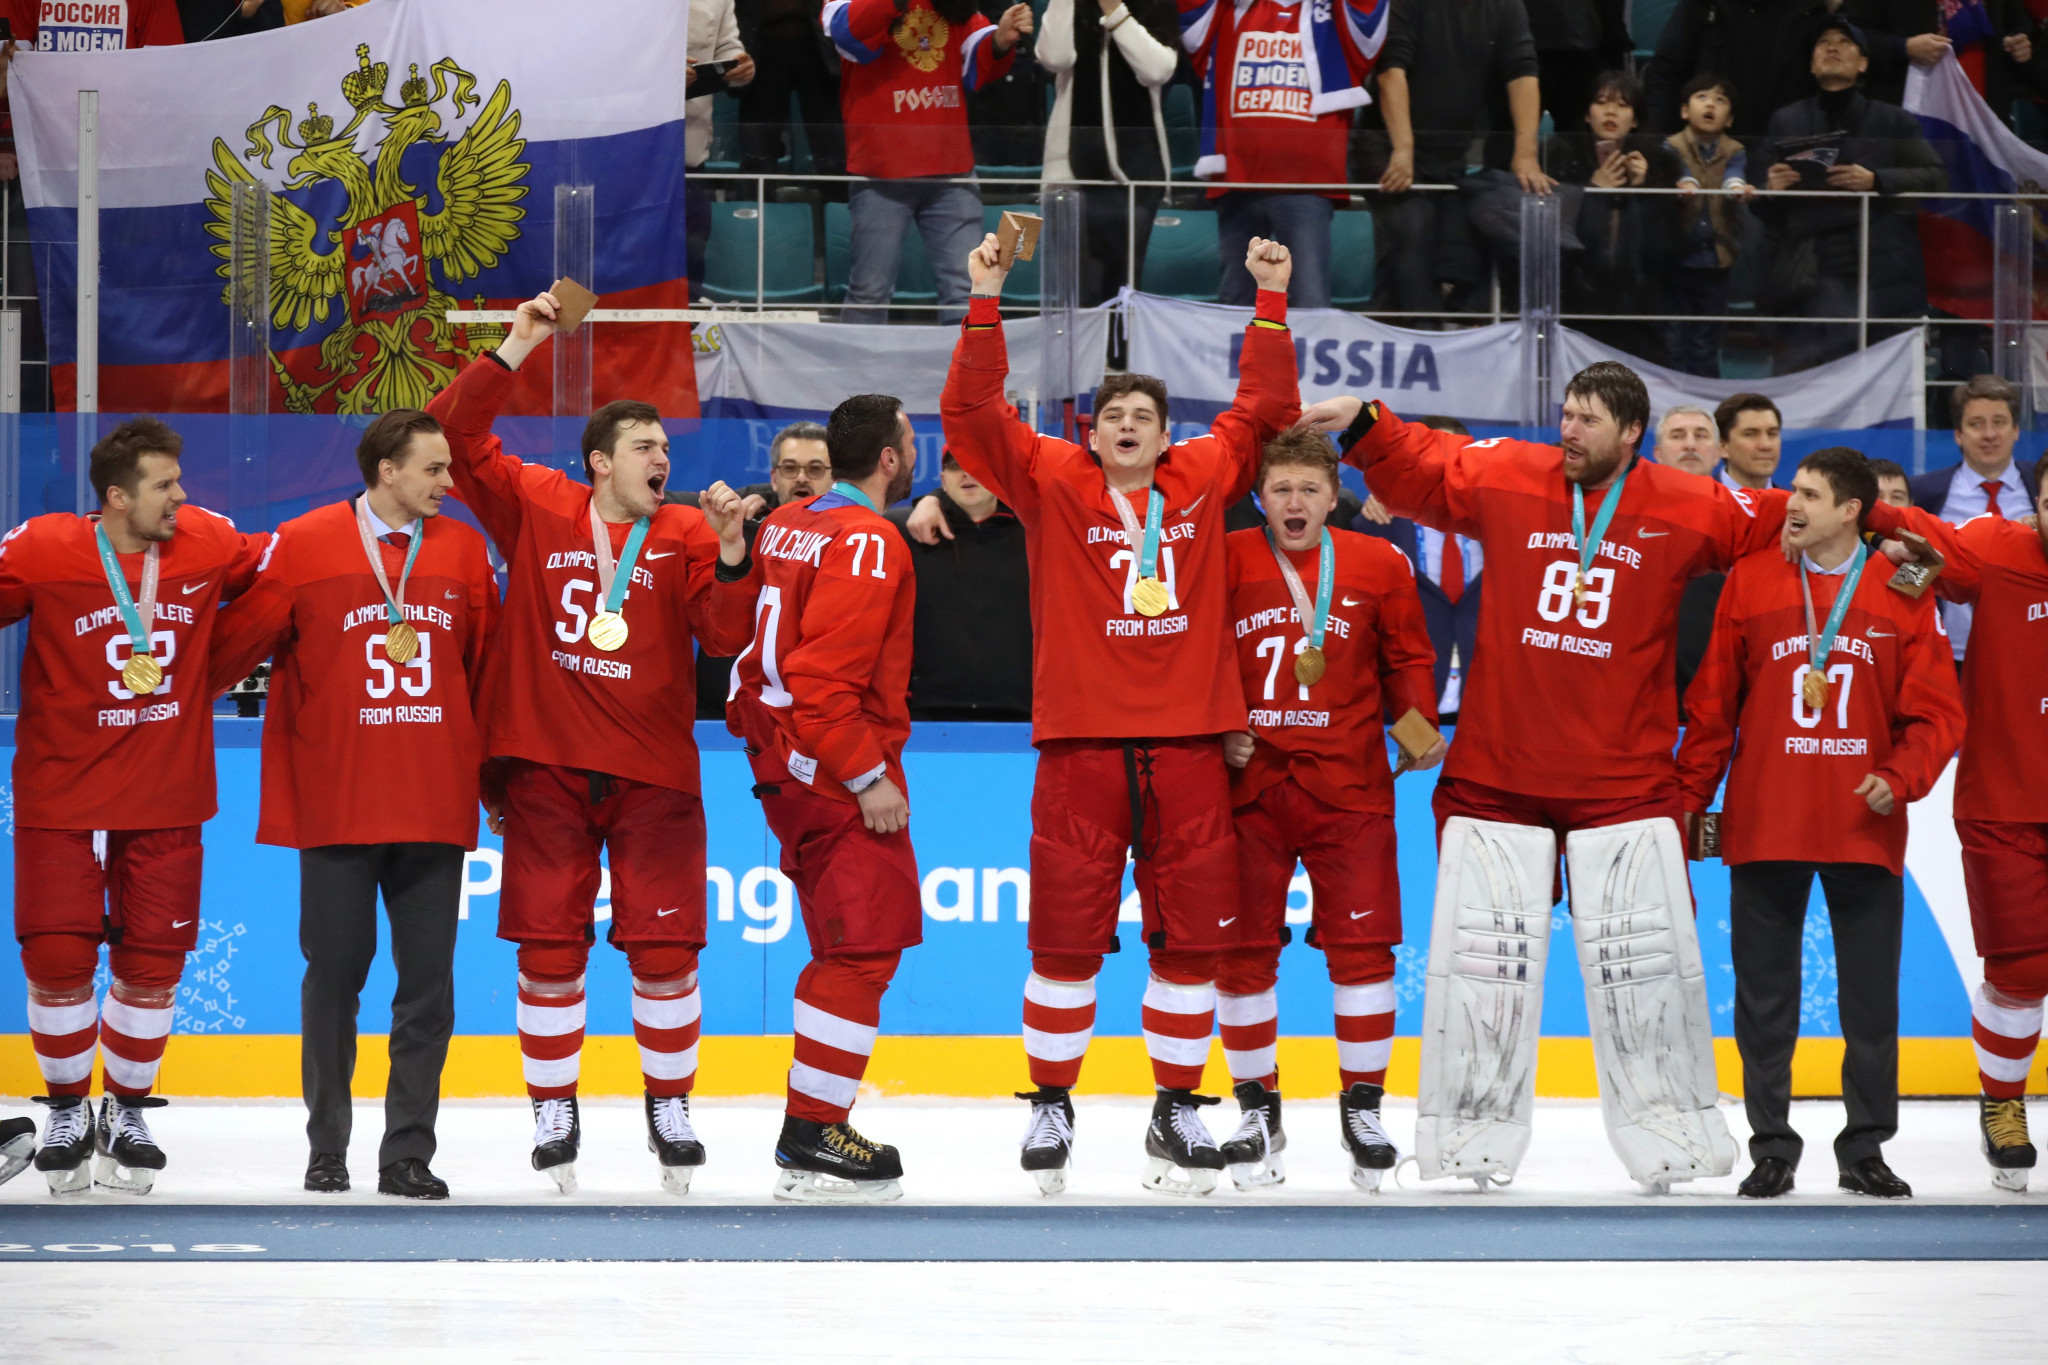 A team representing Olympic Athletes of Russia won gold at Pyeongchang 2018, with the absence of NHL players weakening countries such as the United States and Canada ©Getty Images